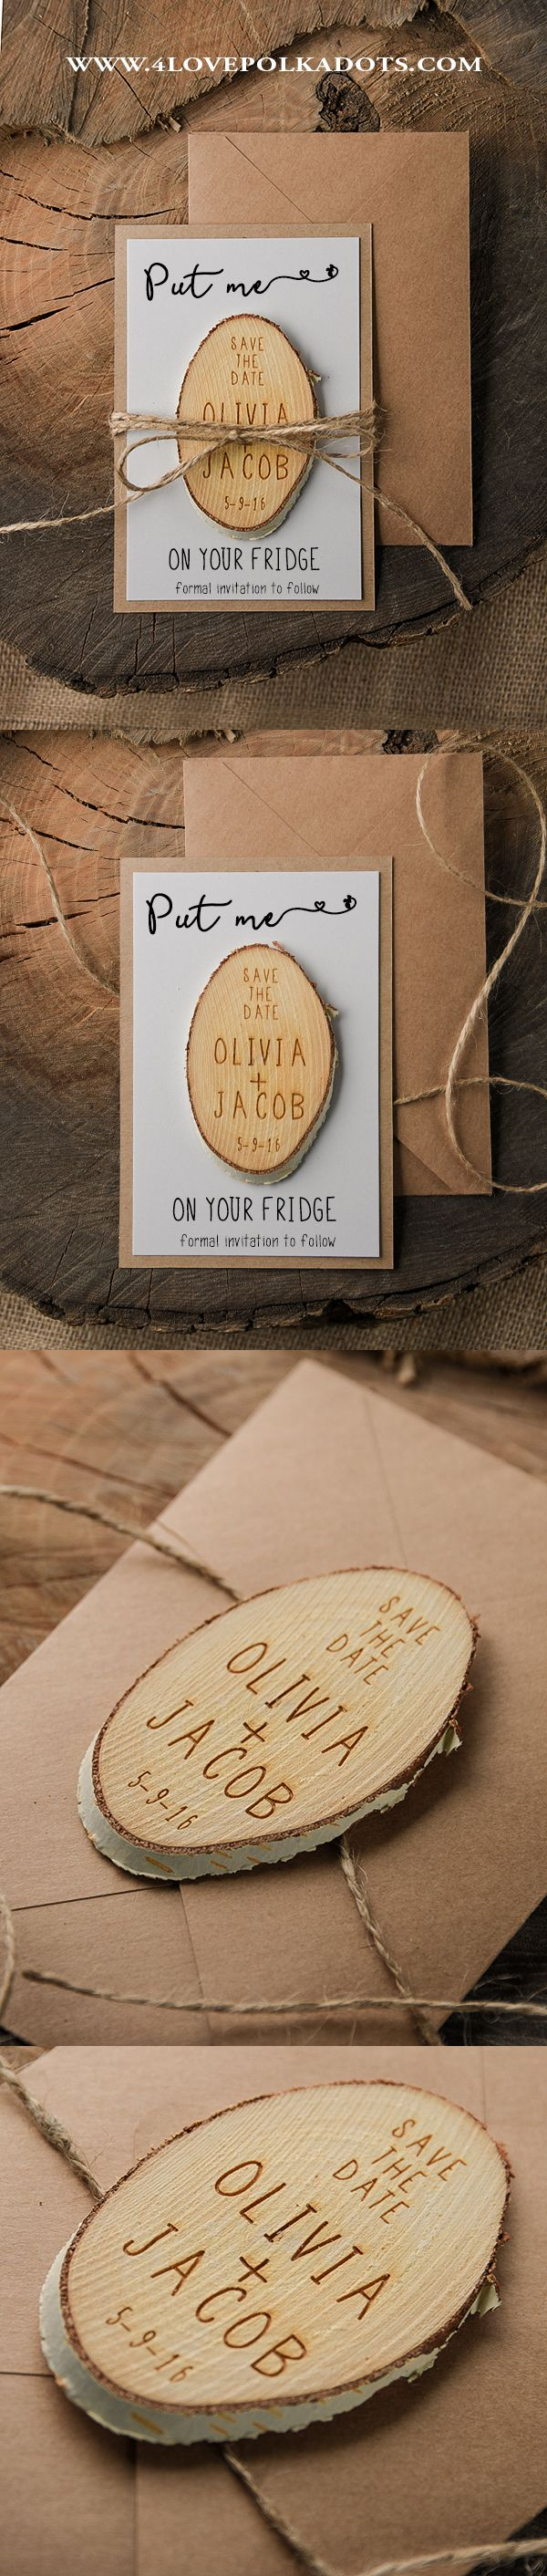 Please Save the Date! Rustic Save the Date Cards with Wooden Magnets ...